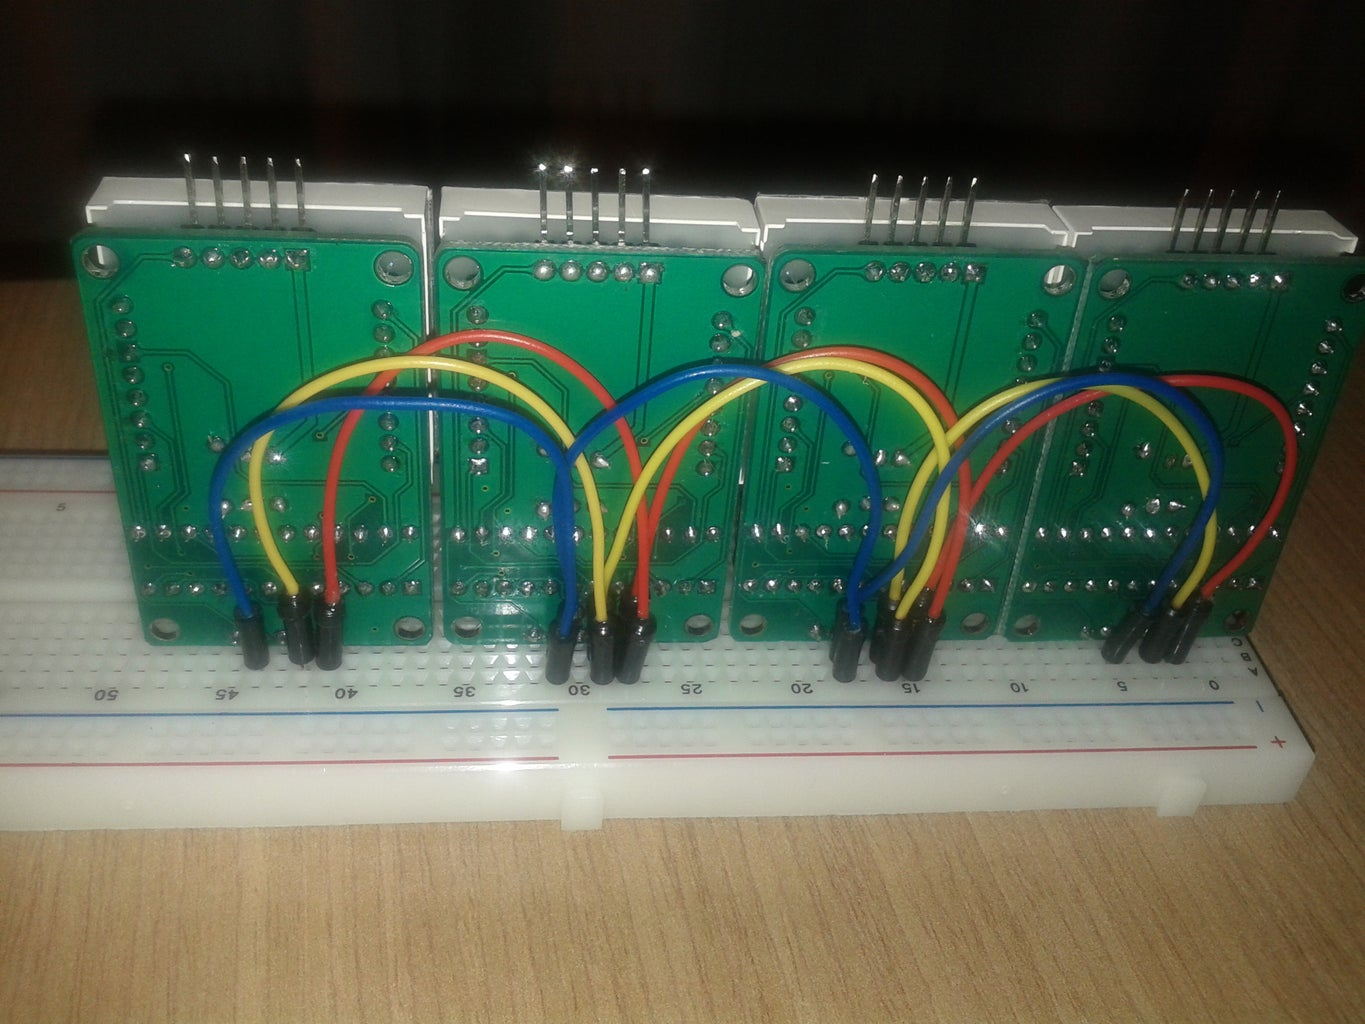 Wiring of Common PINs